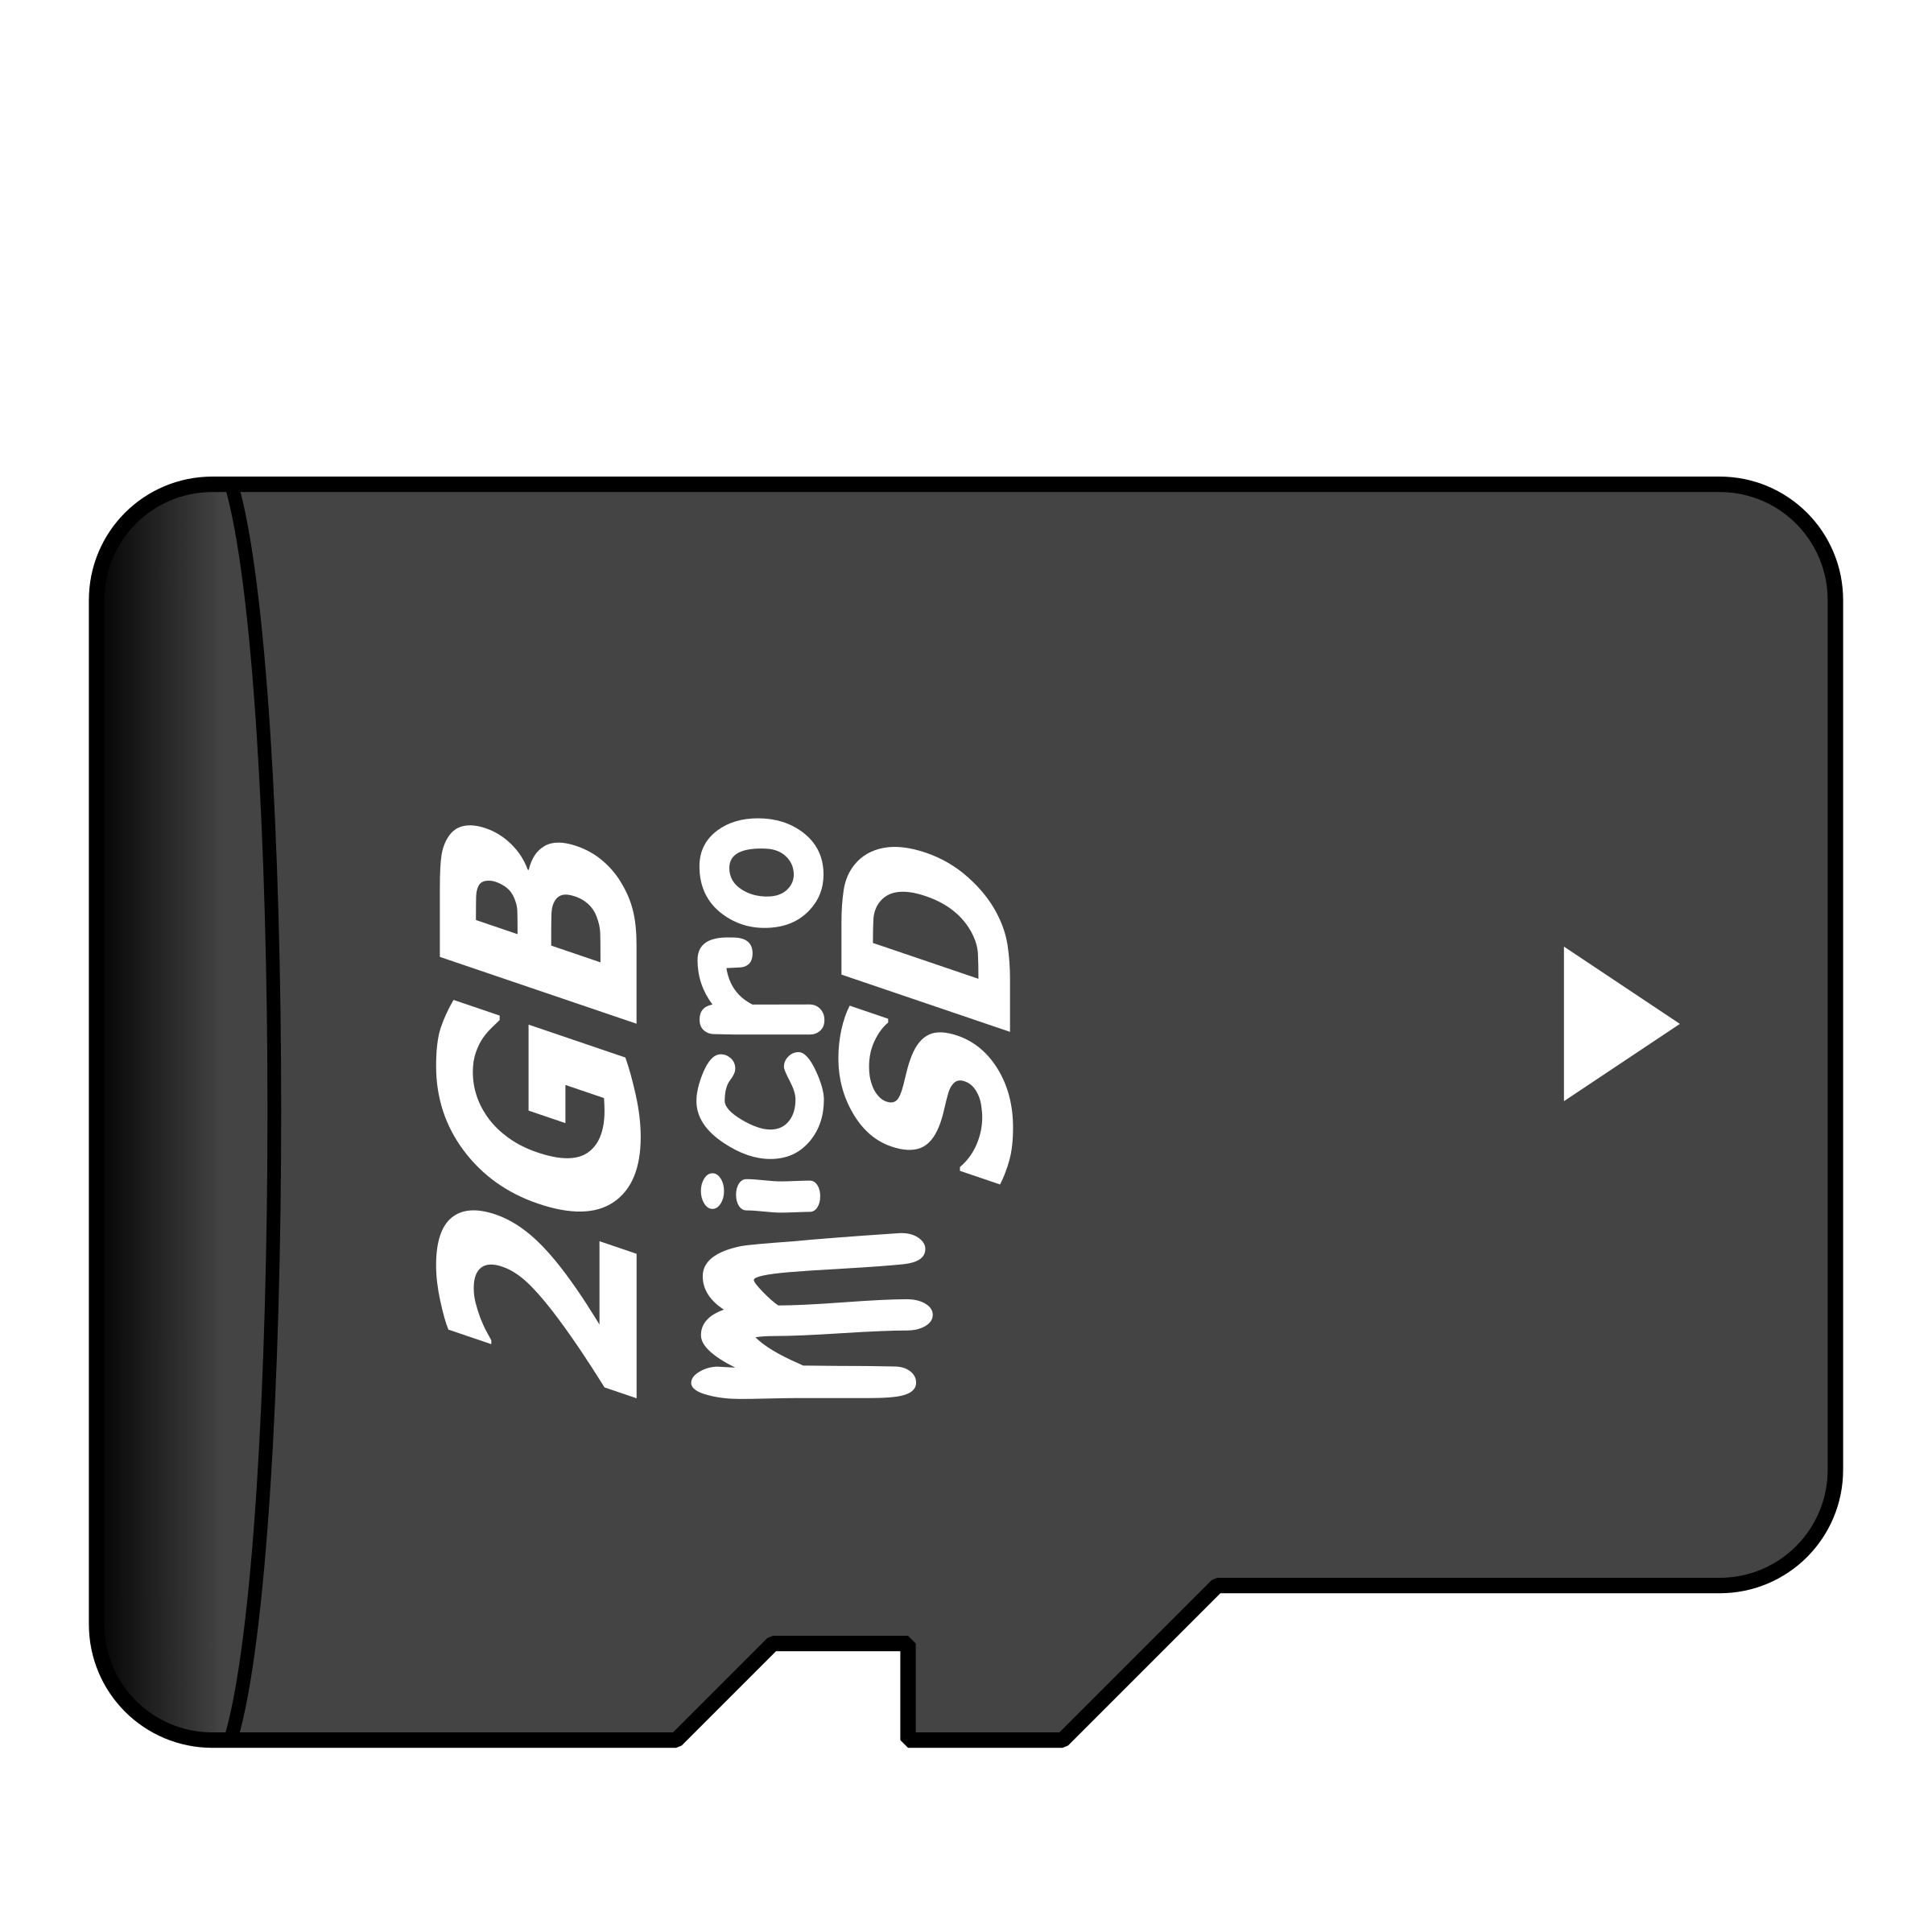 Micro sd card png. Microsd icons free and